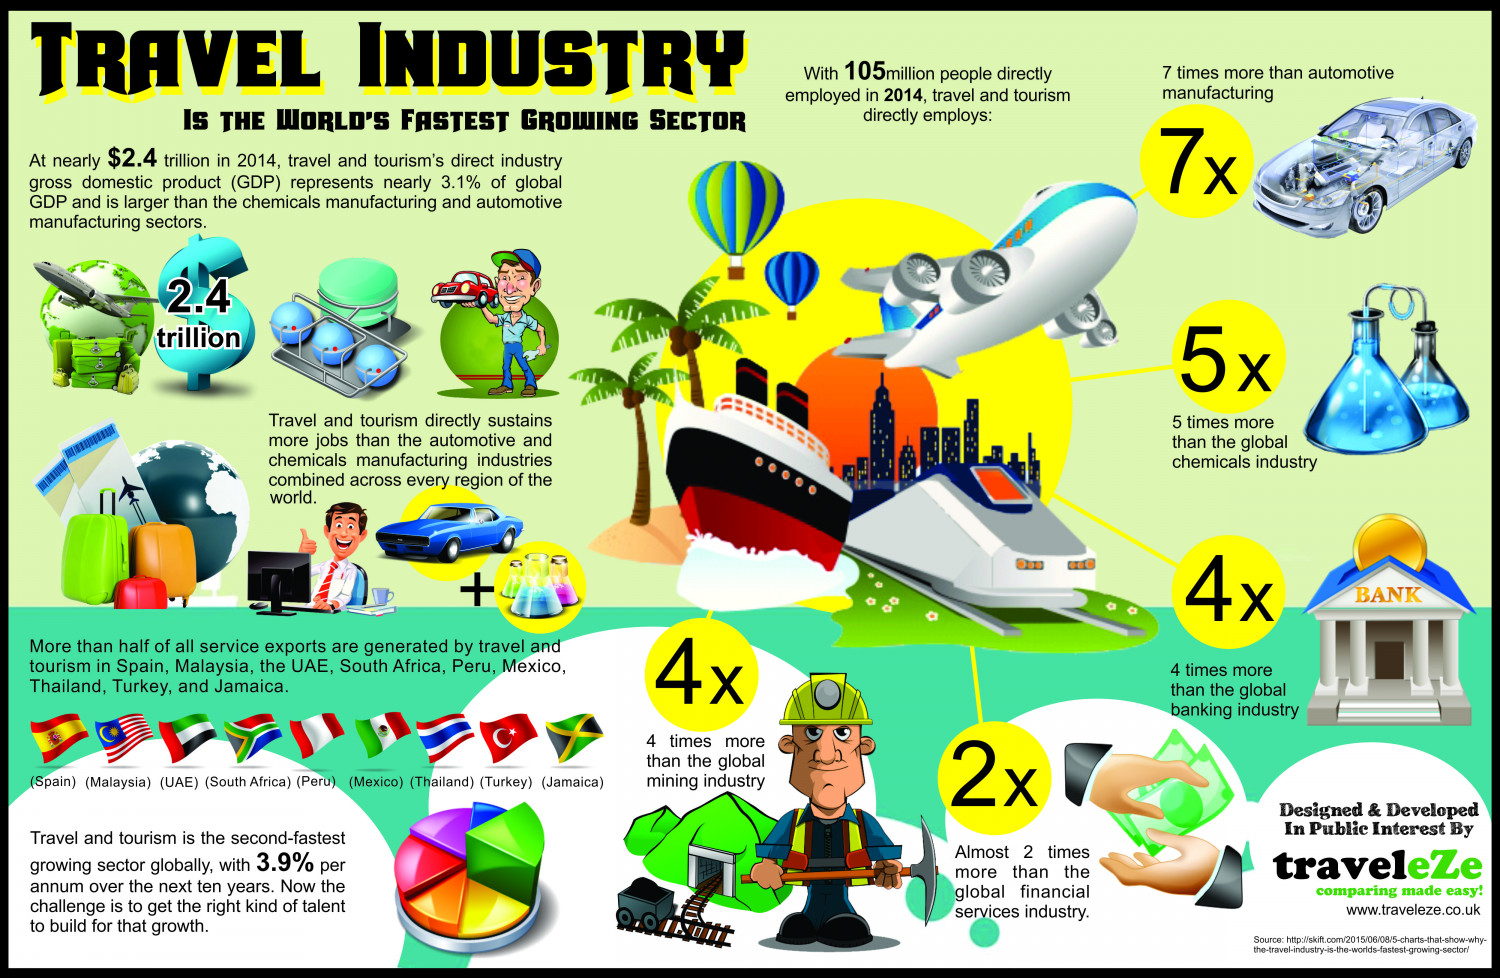 Travel Industry is the World's Fastest Growing Sector ...